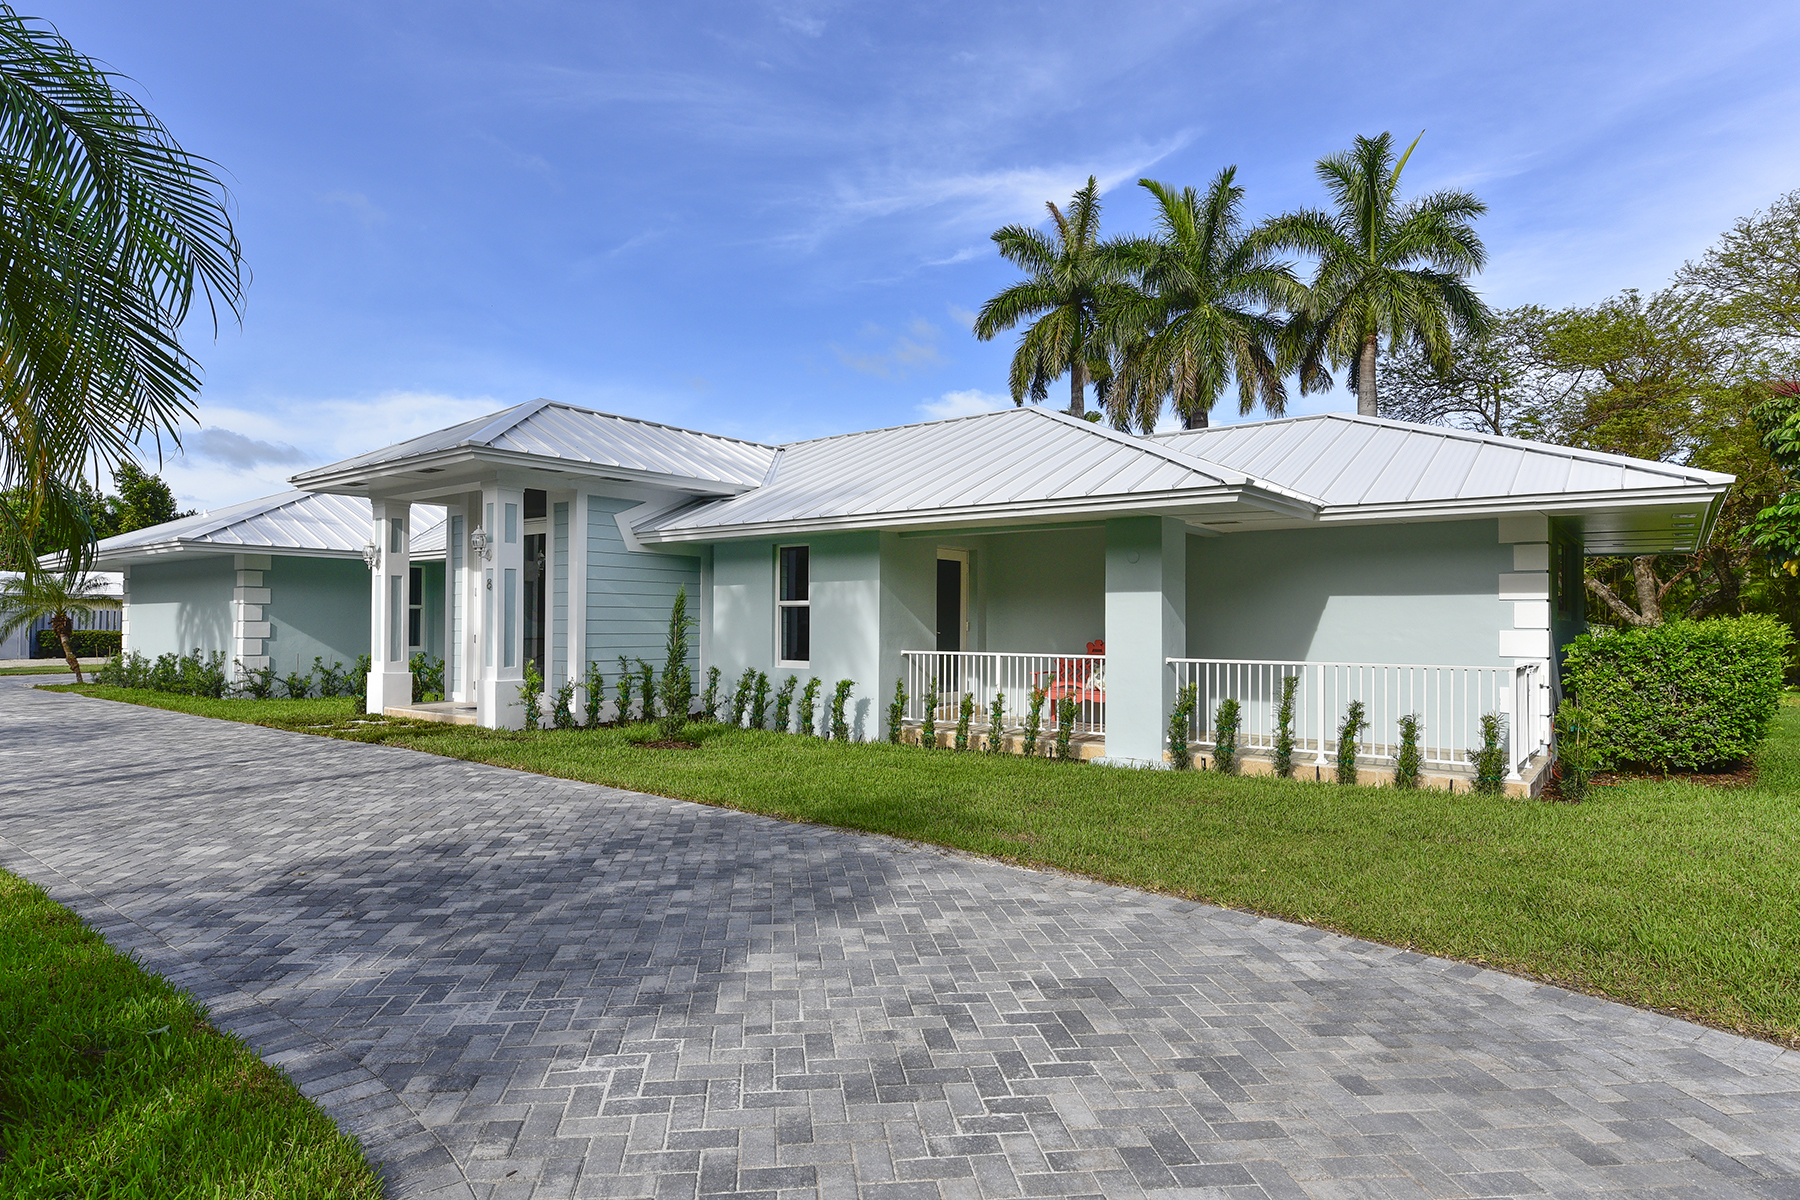 獨棟家庭住宅 為 出售 在 Newly Renovated Home at Ocean Reef 8 Golf Terrace Key Largo, 佛羅里達州, 33037 美國